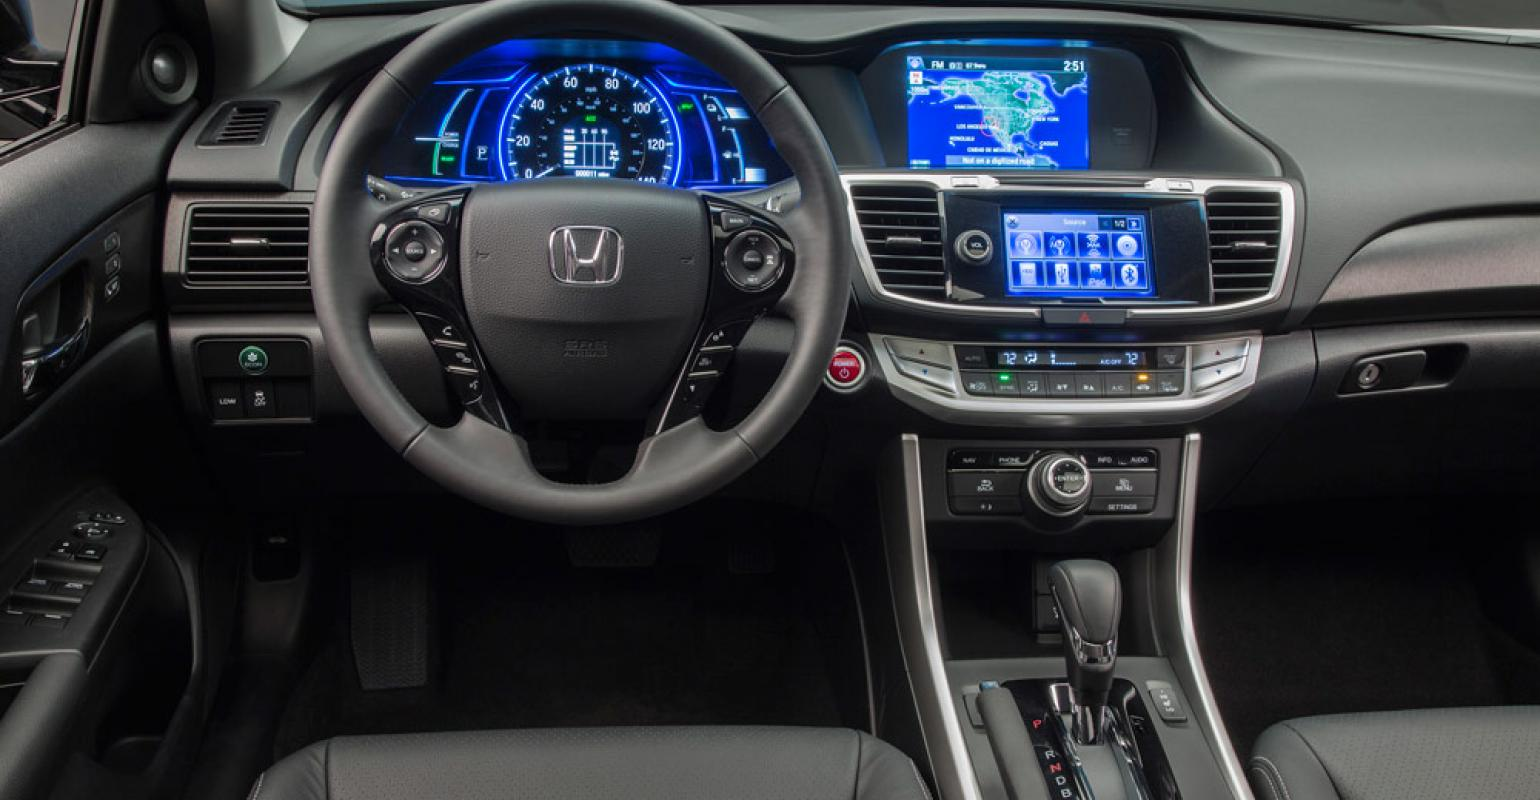 Amazing Honda Accord Hybridrsquos IP Features Additional Gauges To Track Battery  Range Fuel Economy